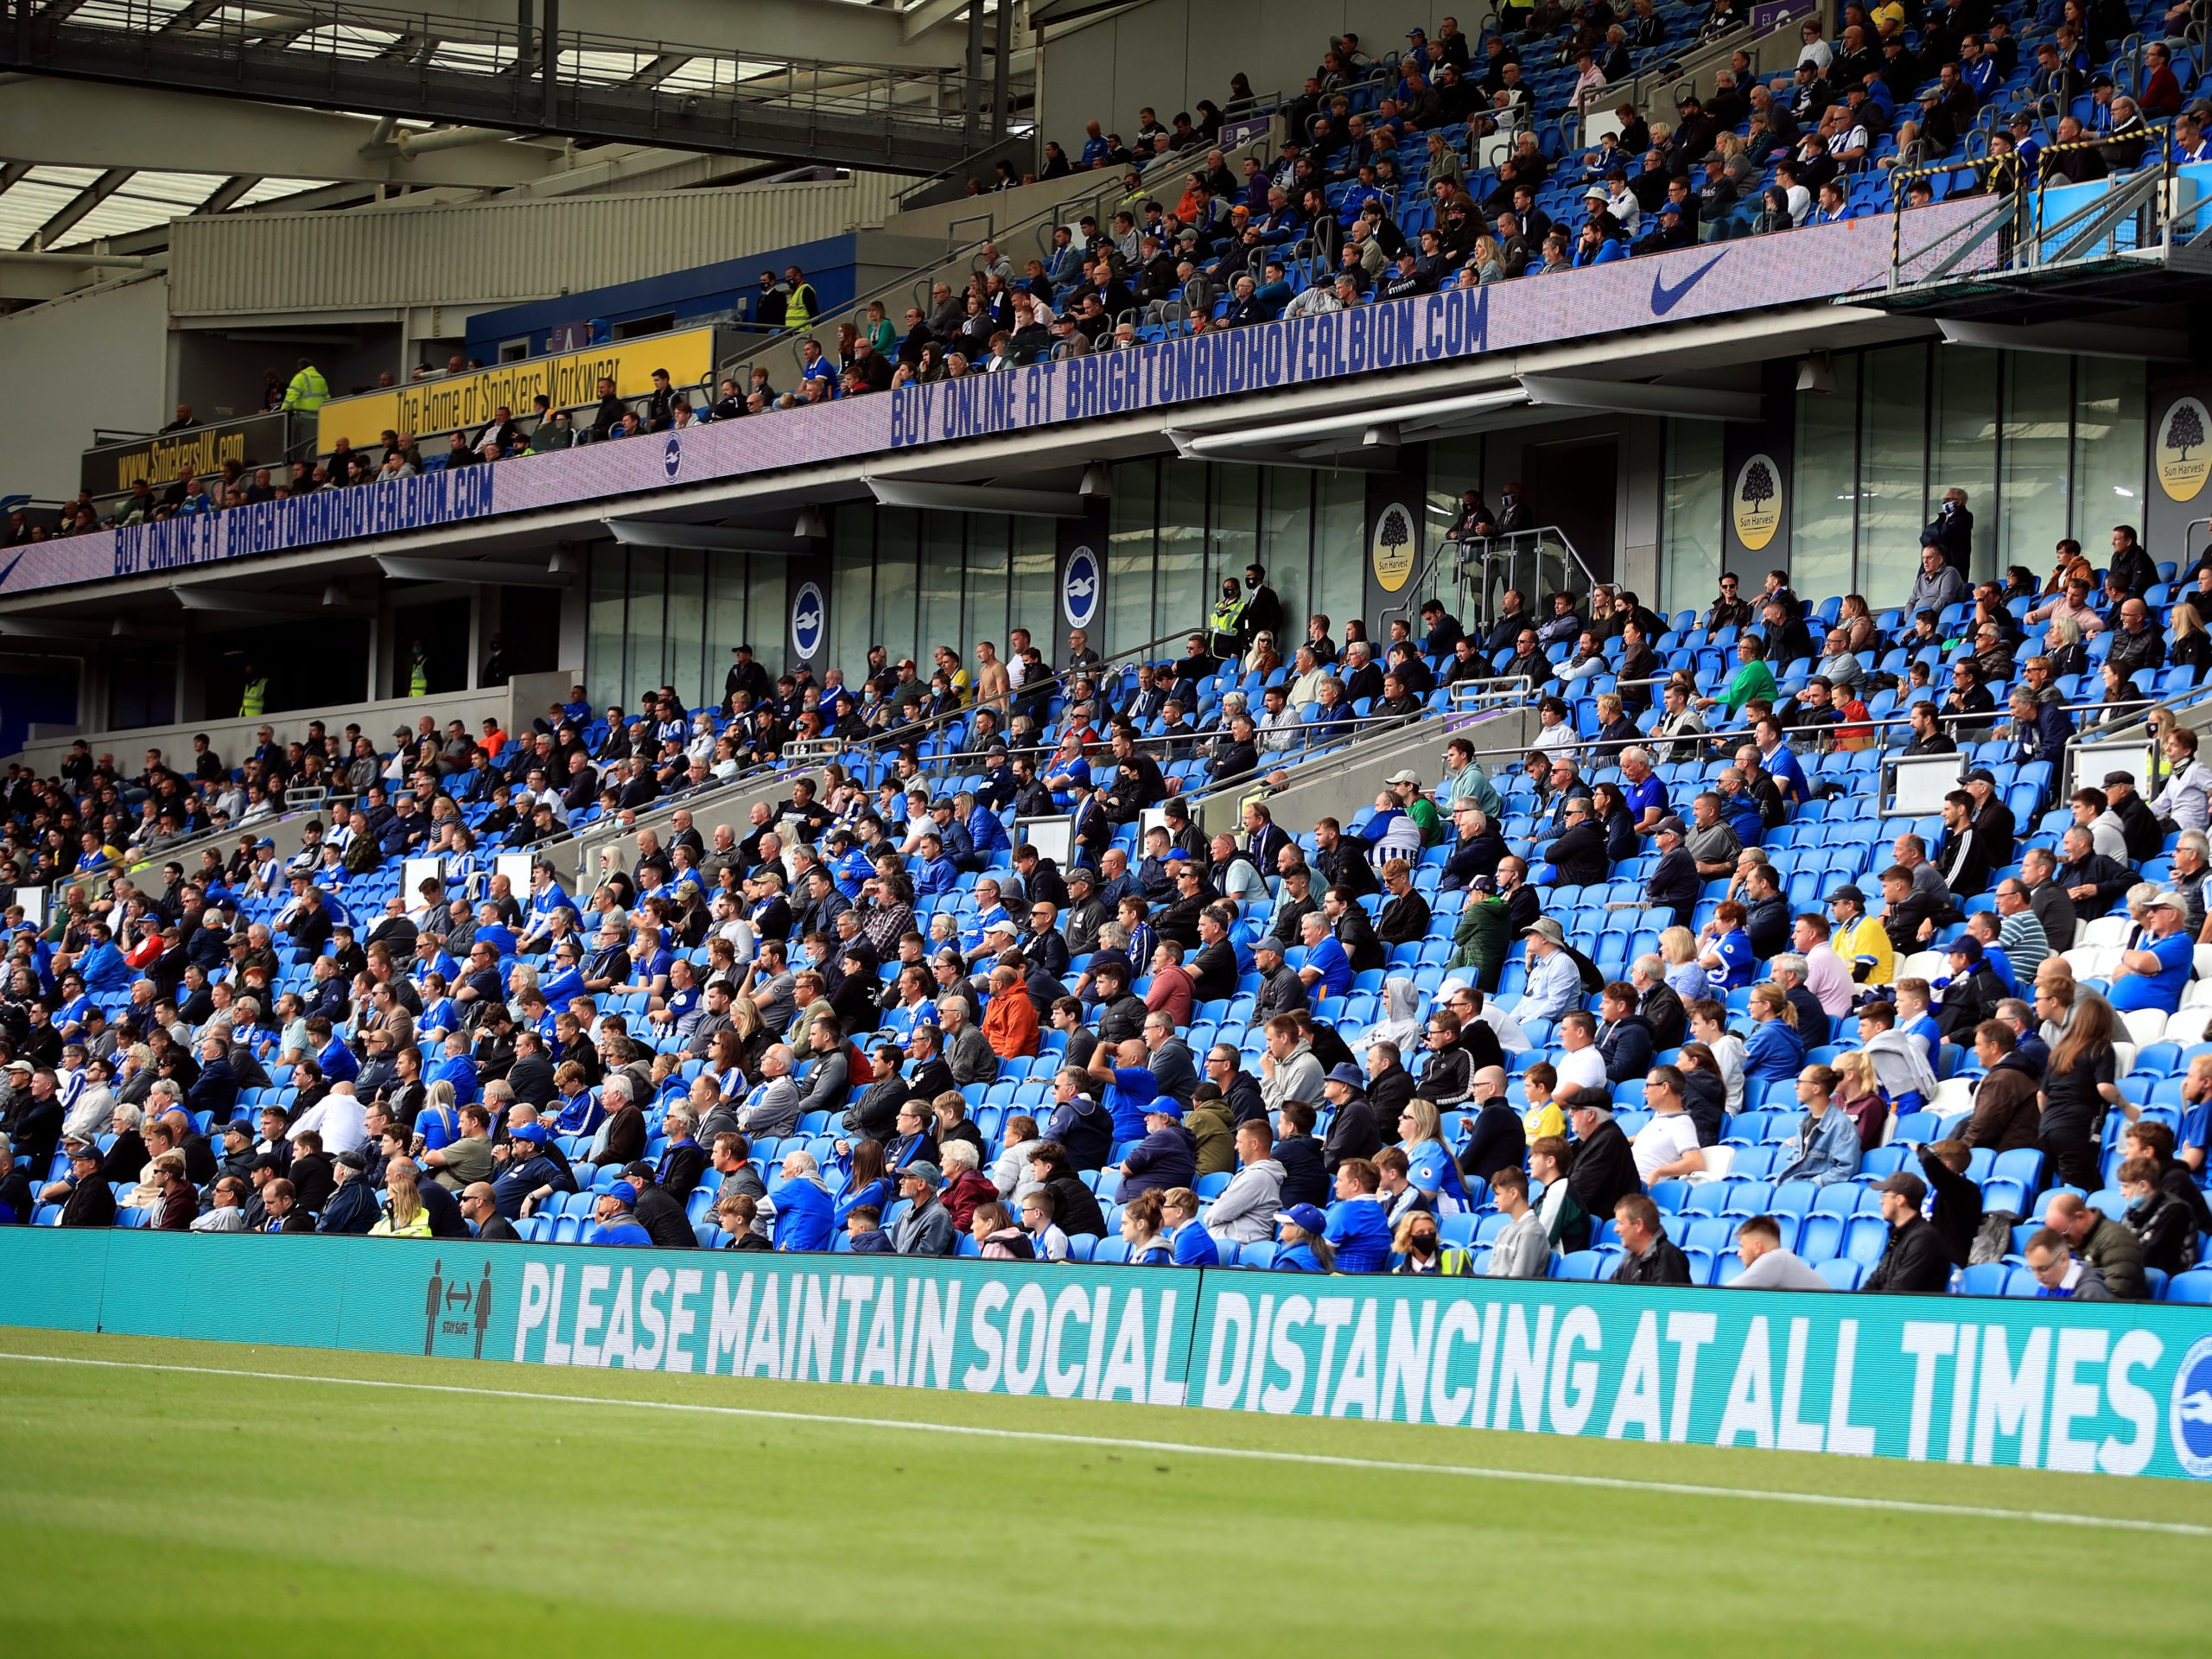 Plans to let fans back into English sporting venues 'paused' – Michael Gove